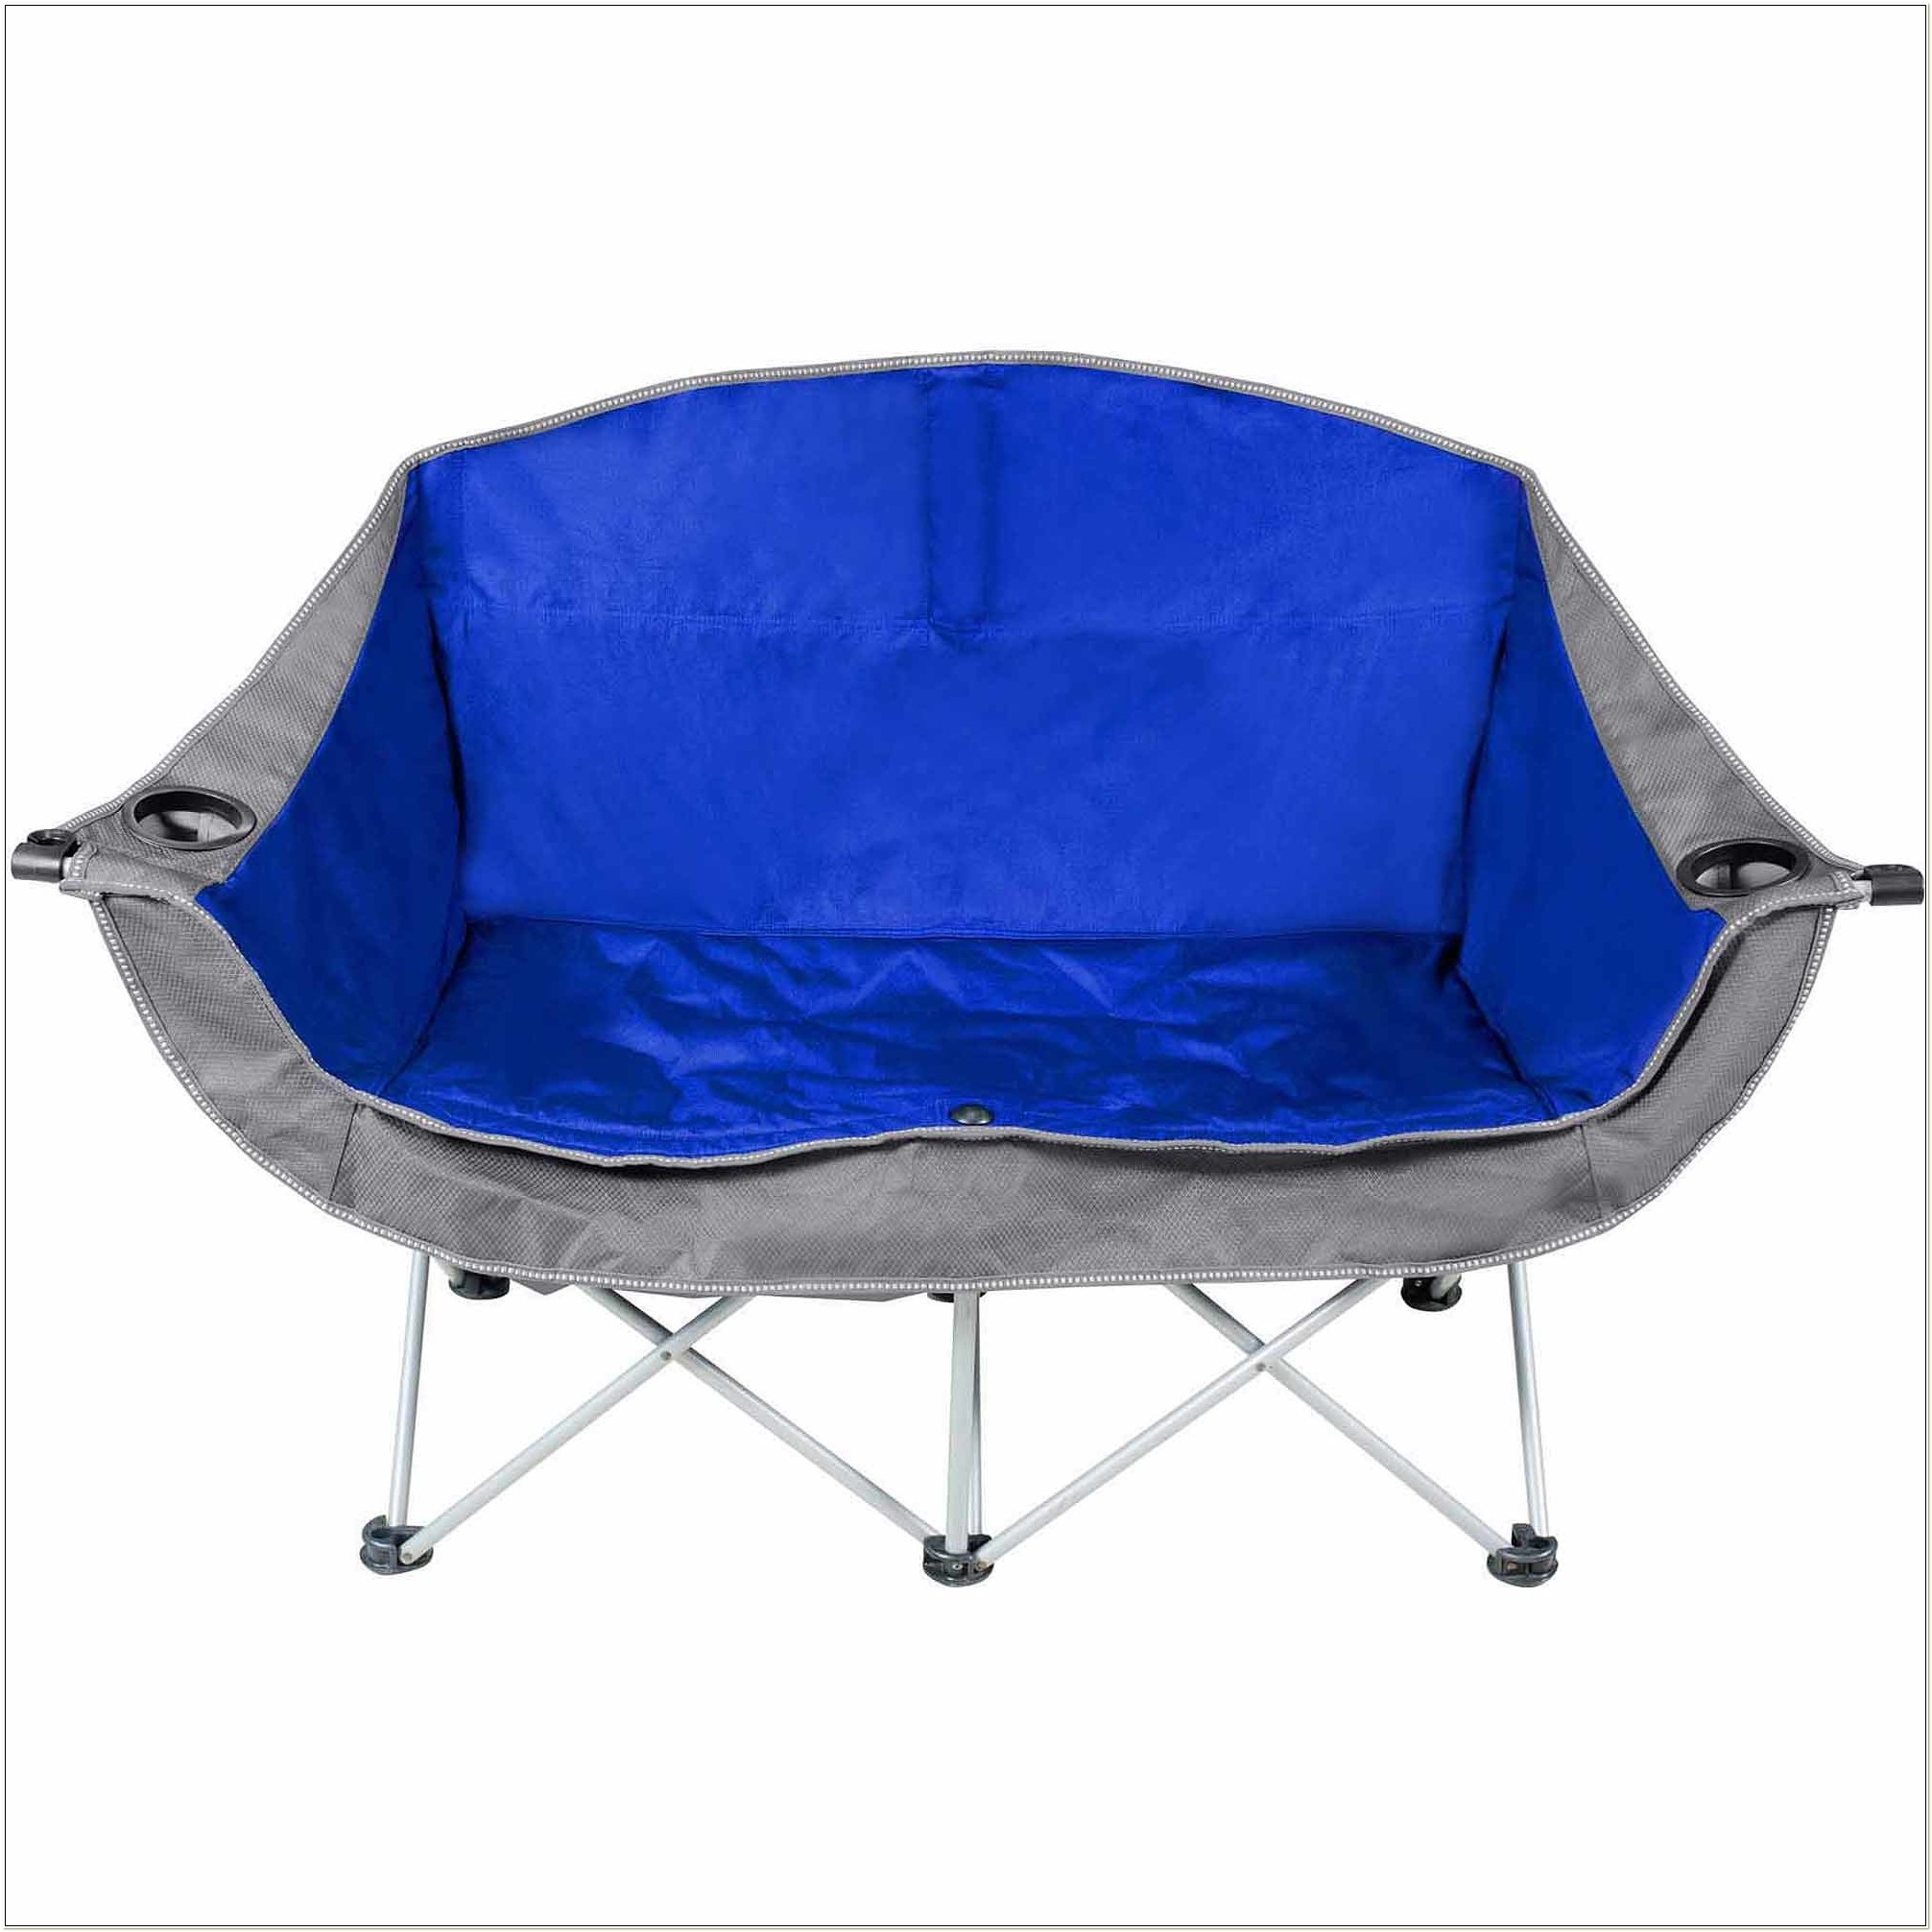 Two Seater Folding Camping Chairs